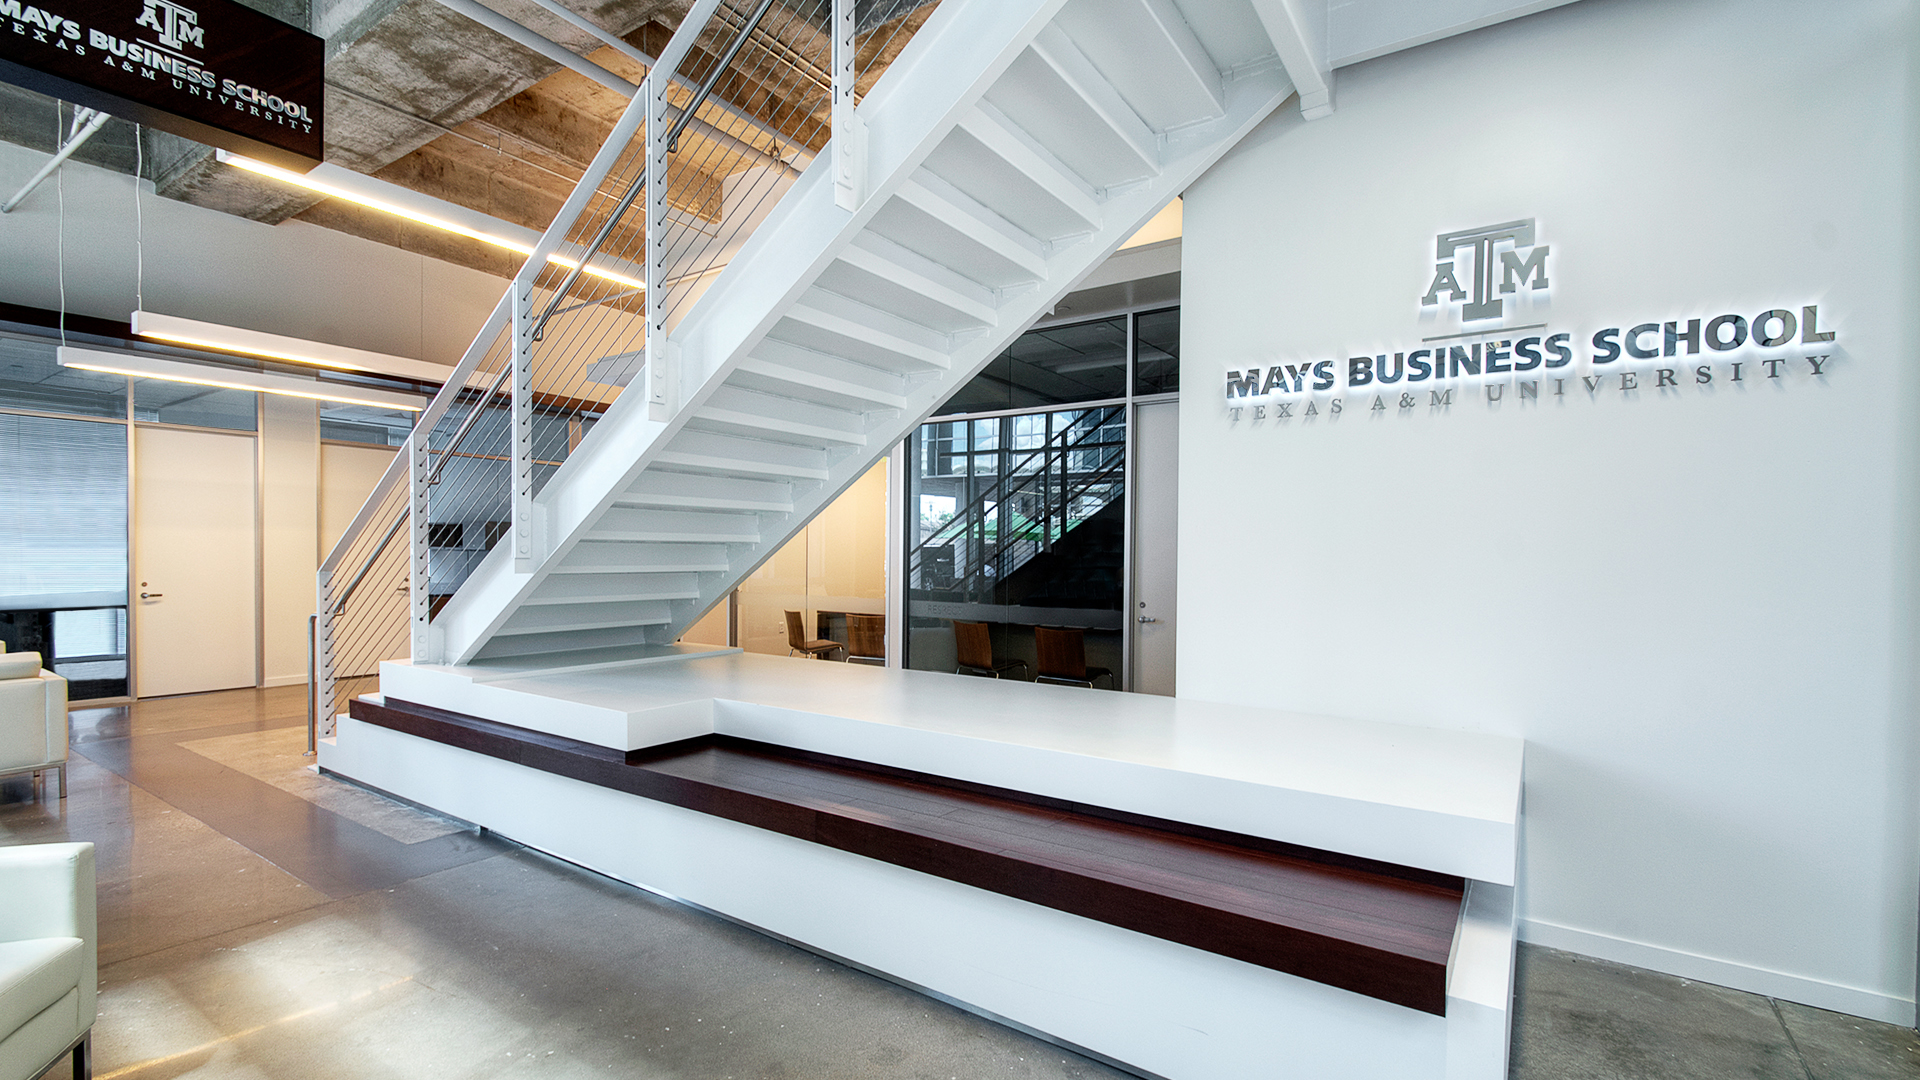 Higher Education Interior Design Texas A&M Mays Business School Stairwall Seating